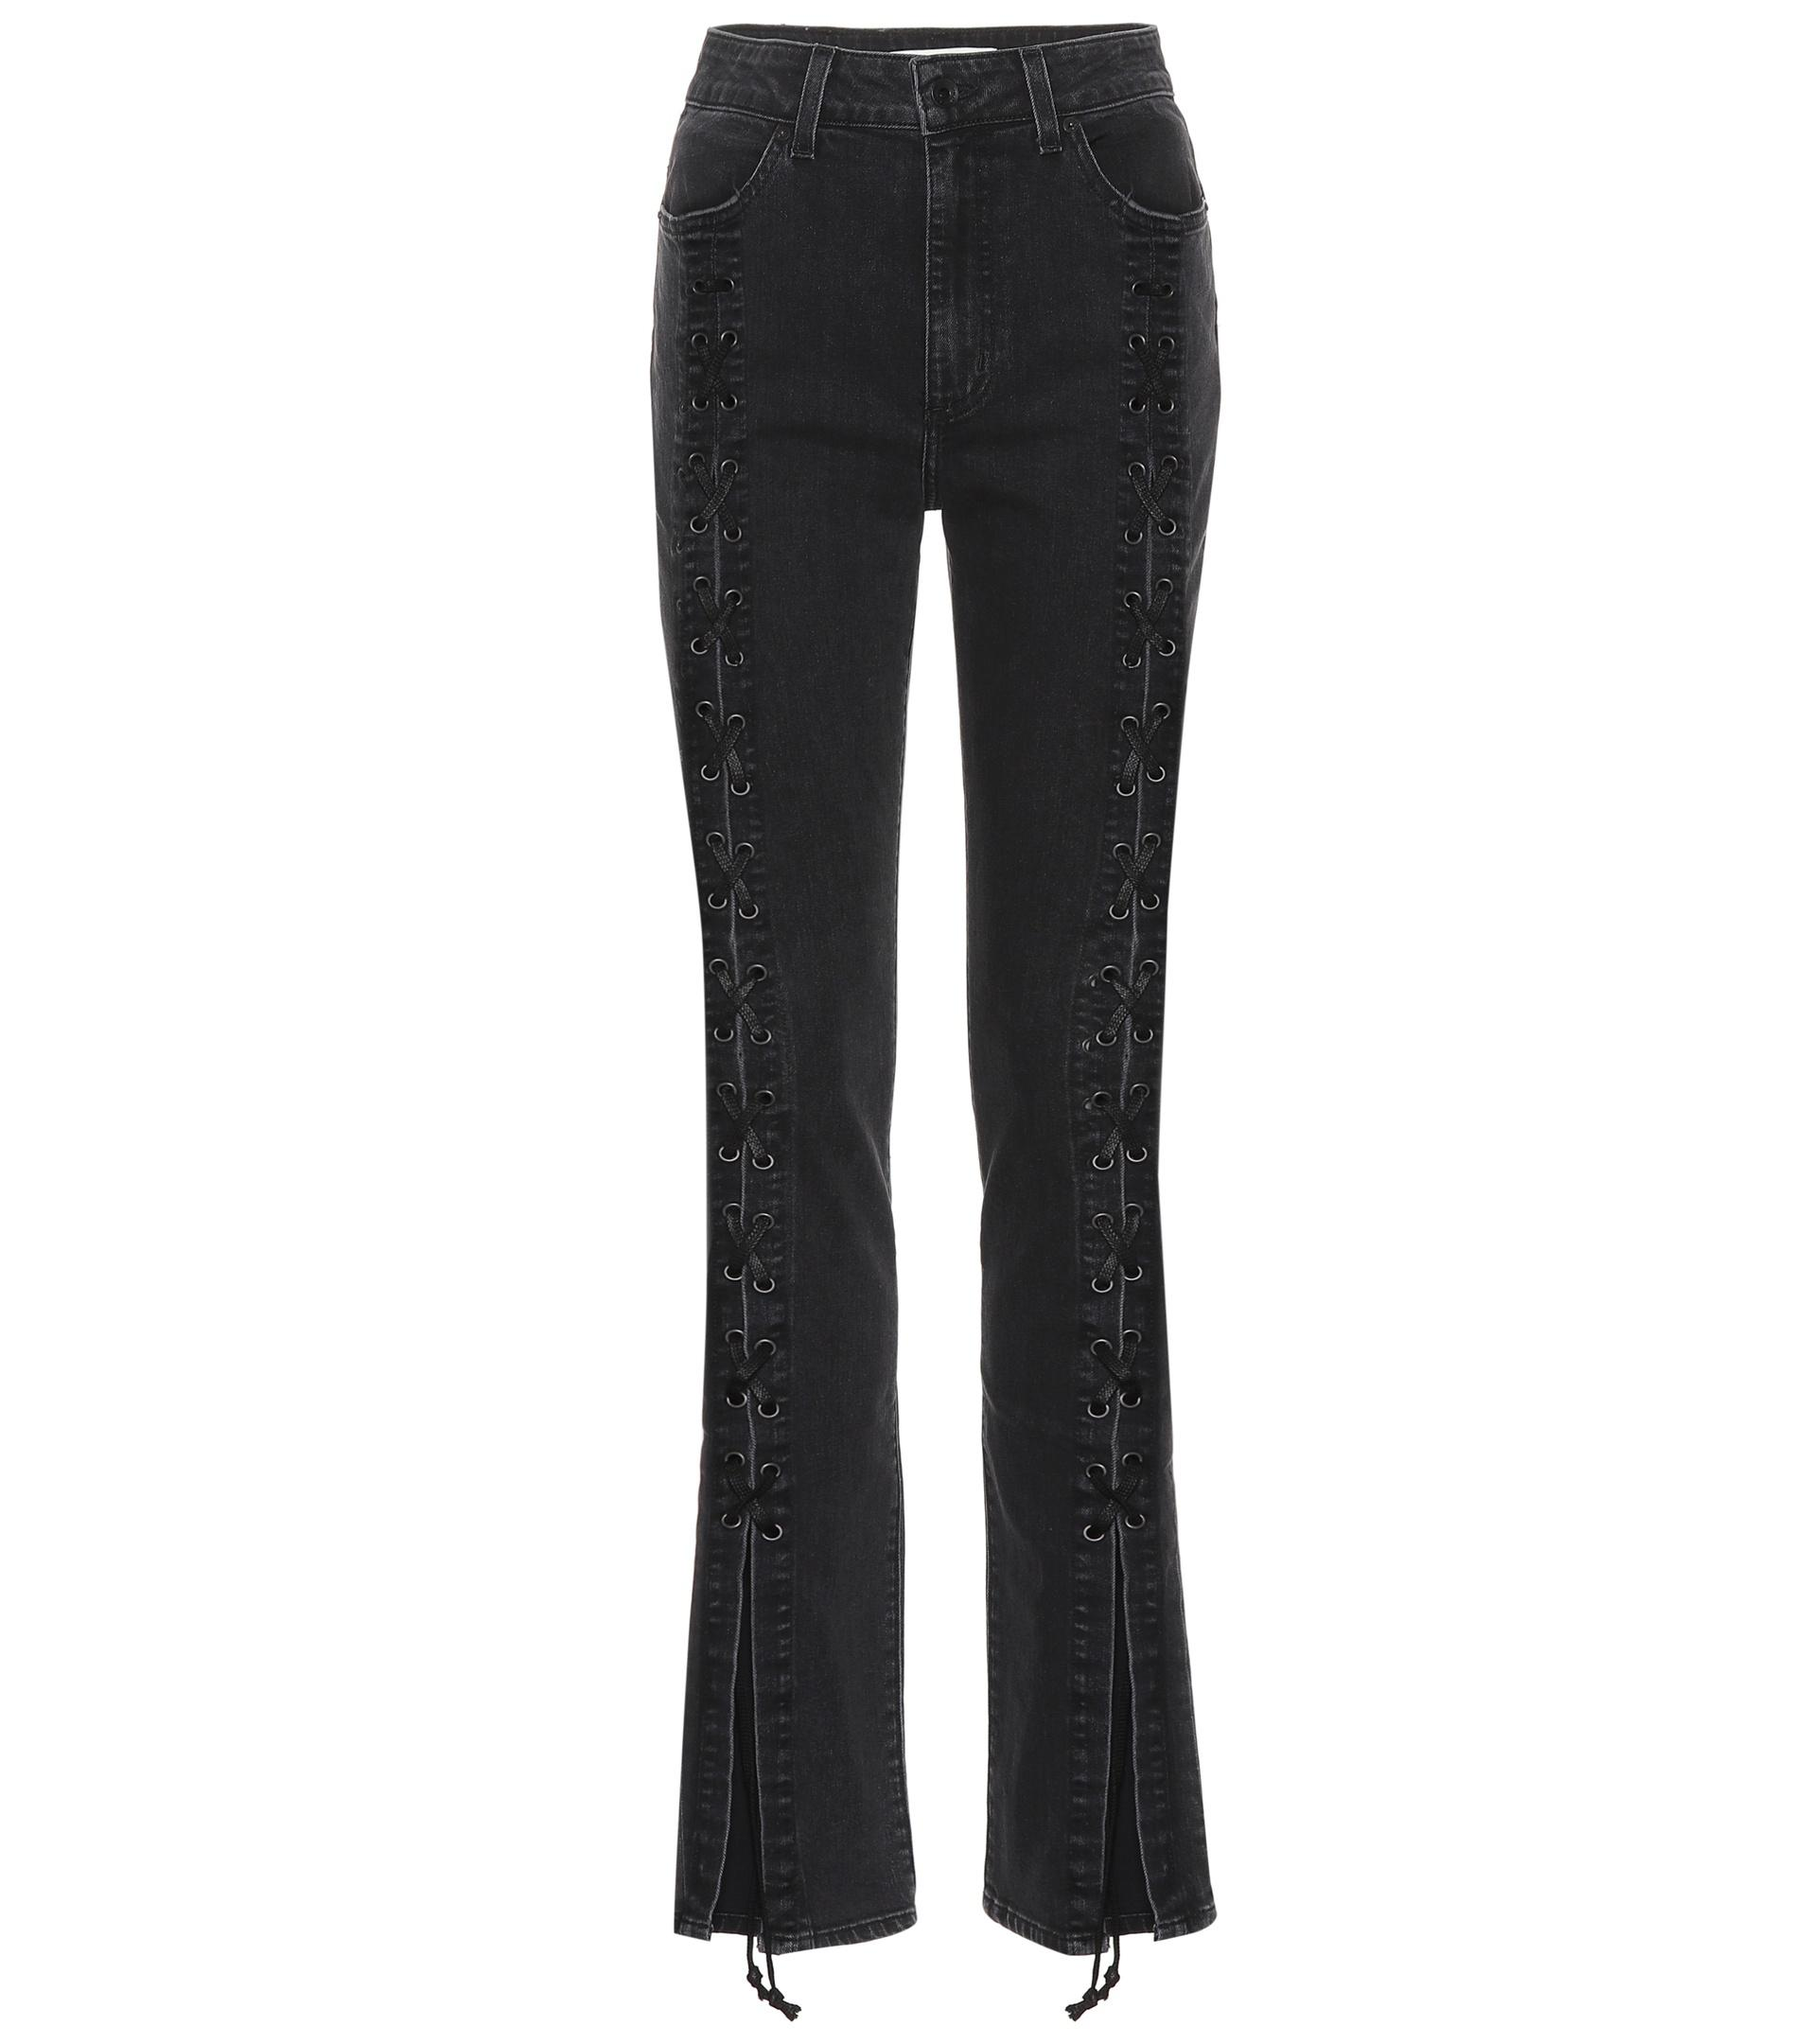 f28debea1c4 Lyst - Jonathan Simkhai Lace-up Jeans in Black